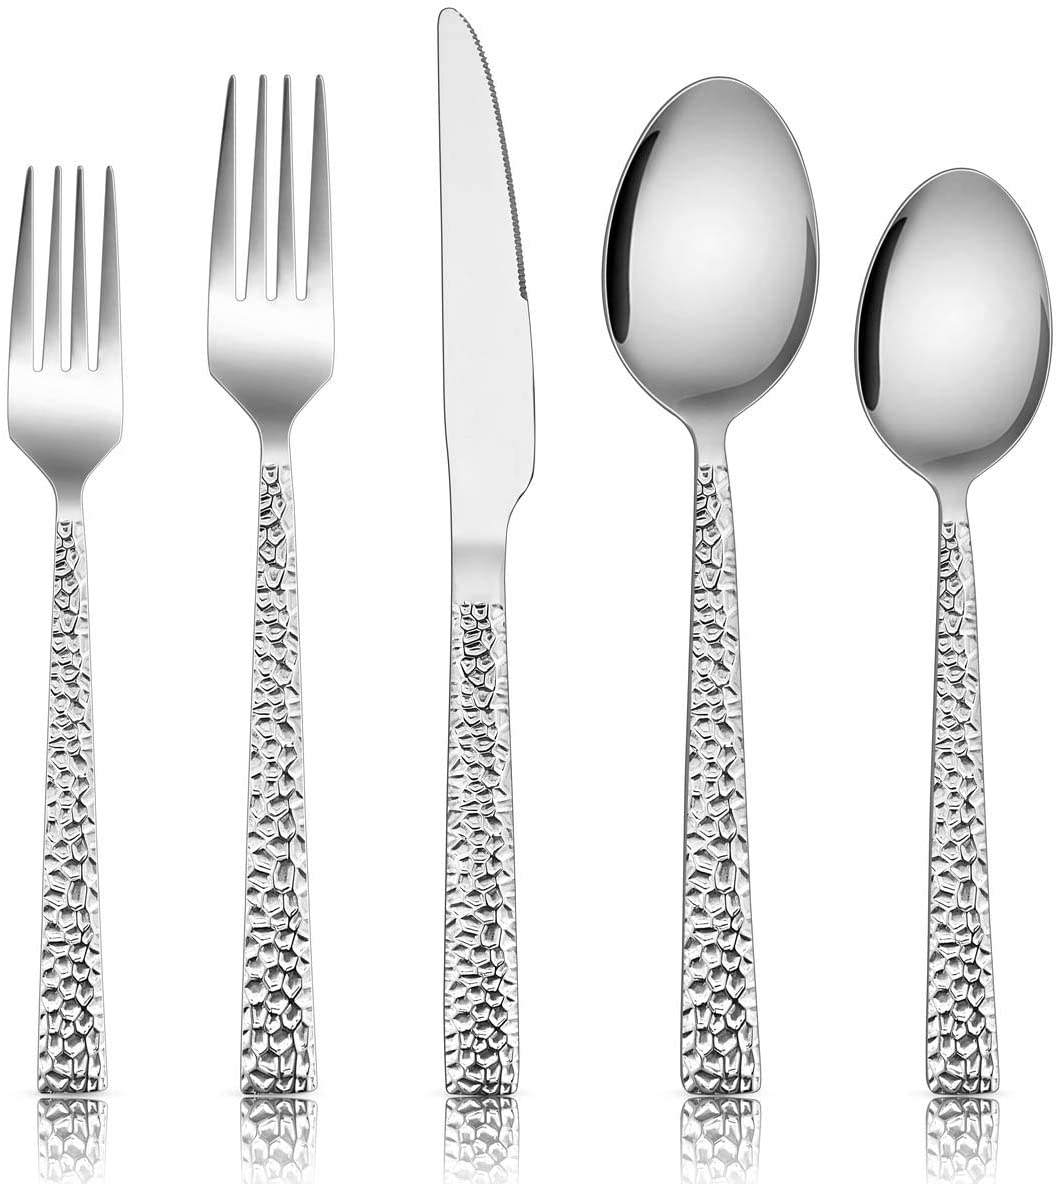 Hammered Silverware Set, E-far 40-Piece Stainless Steel Square Flatware Set for 8, Metal Tableware Cutlery Set Includes Dinner Knives/Forks/Spoons, Modern Design & Mirror Polished - Dishwasher Safe